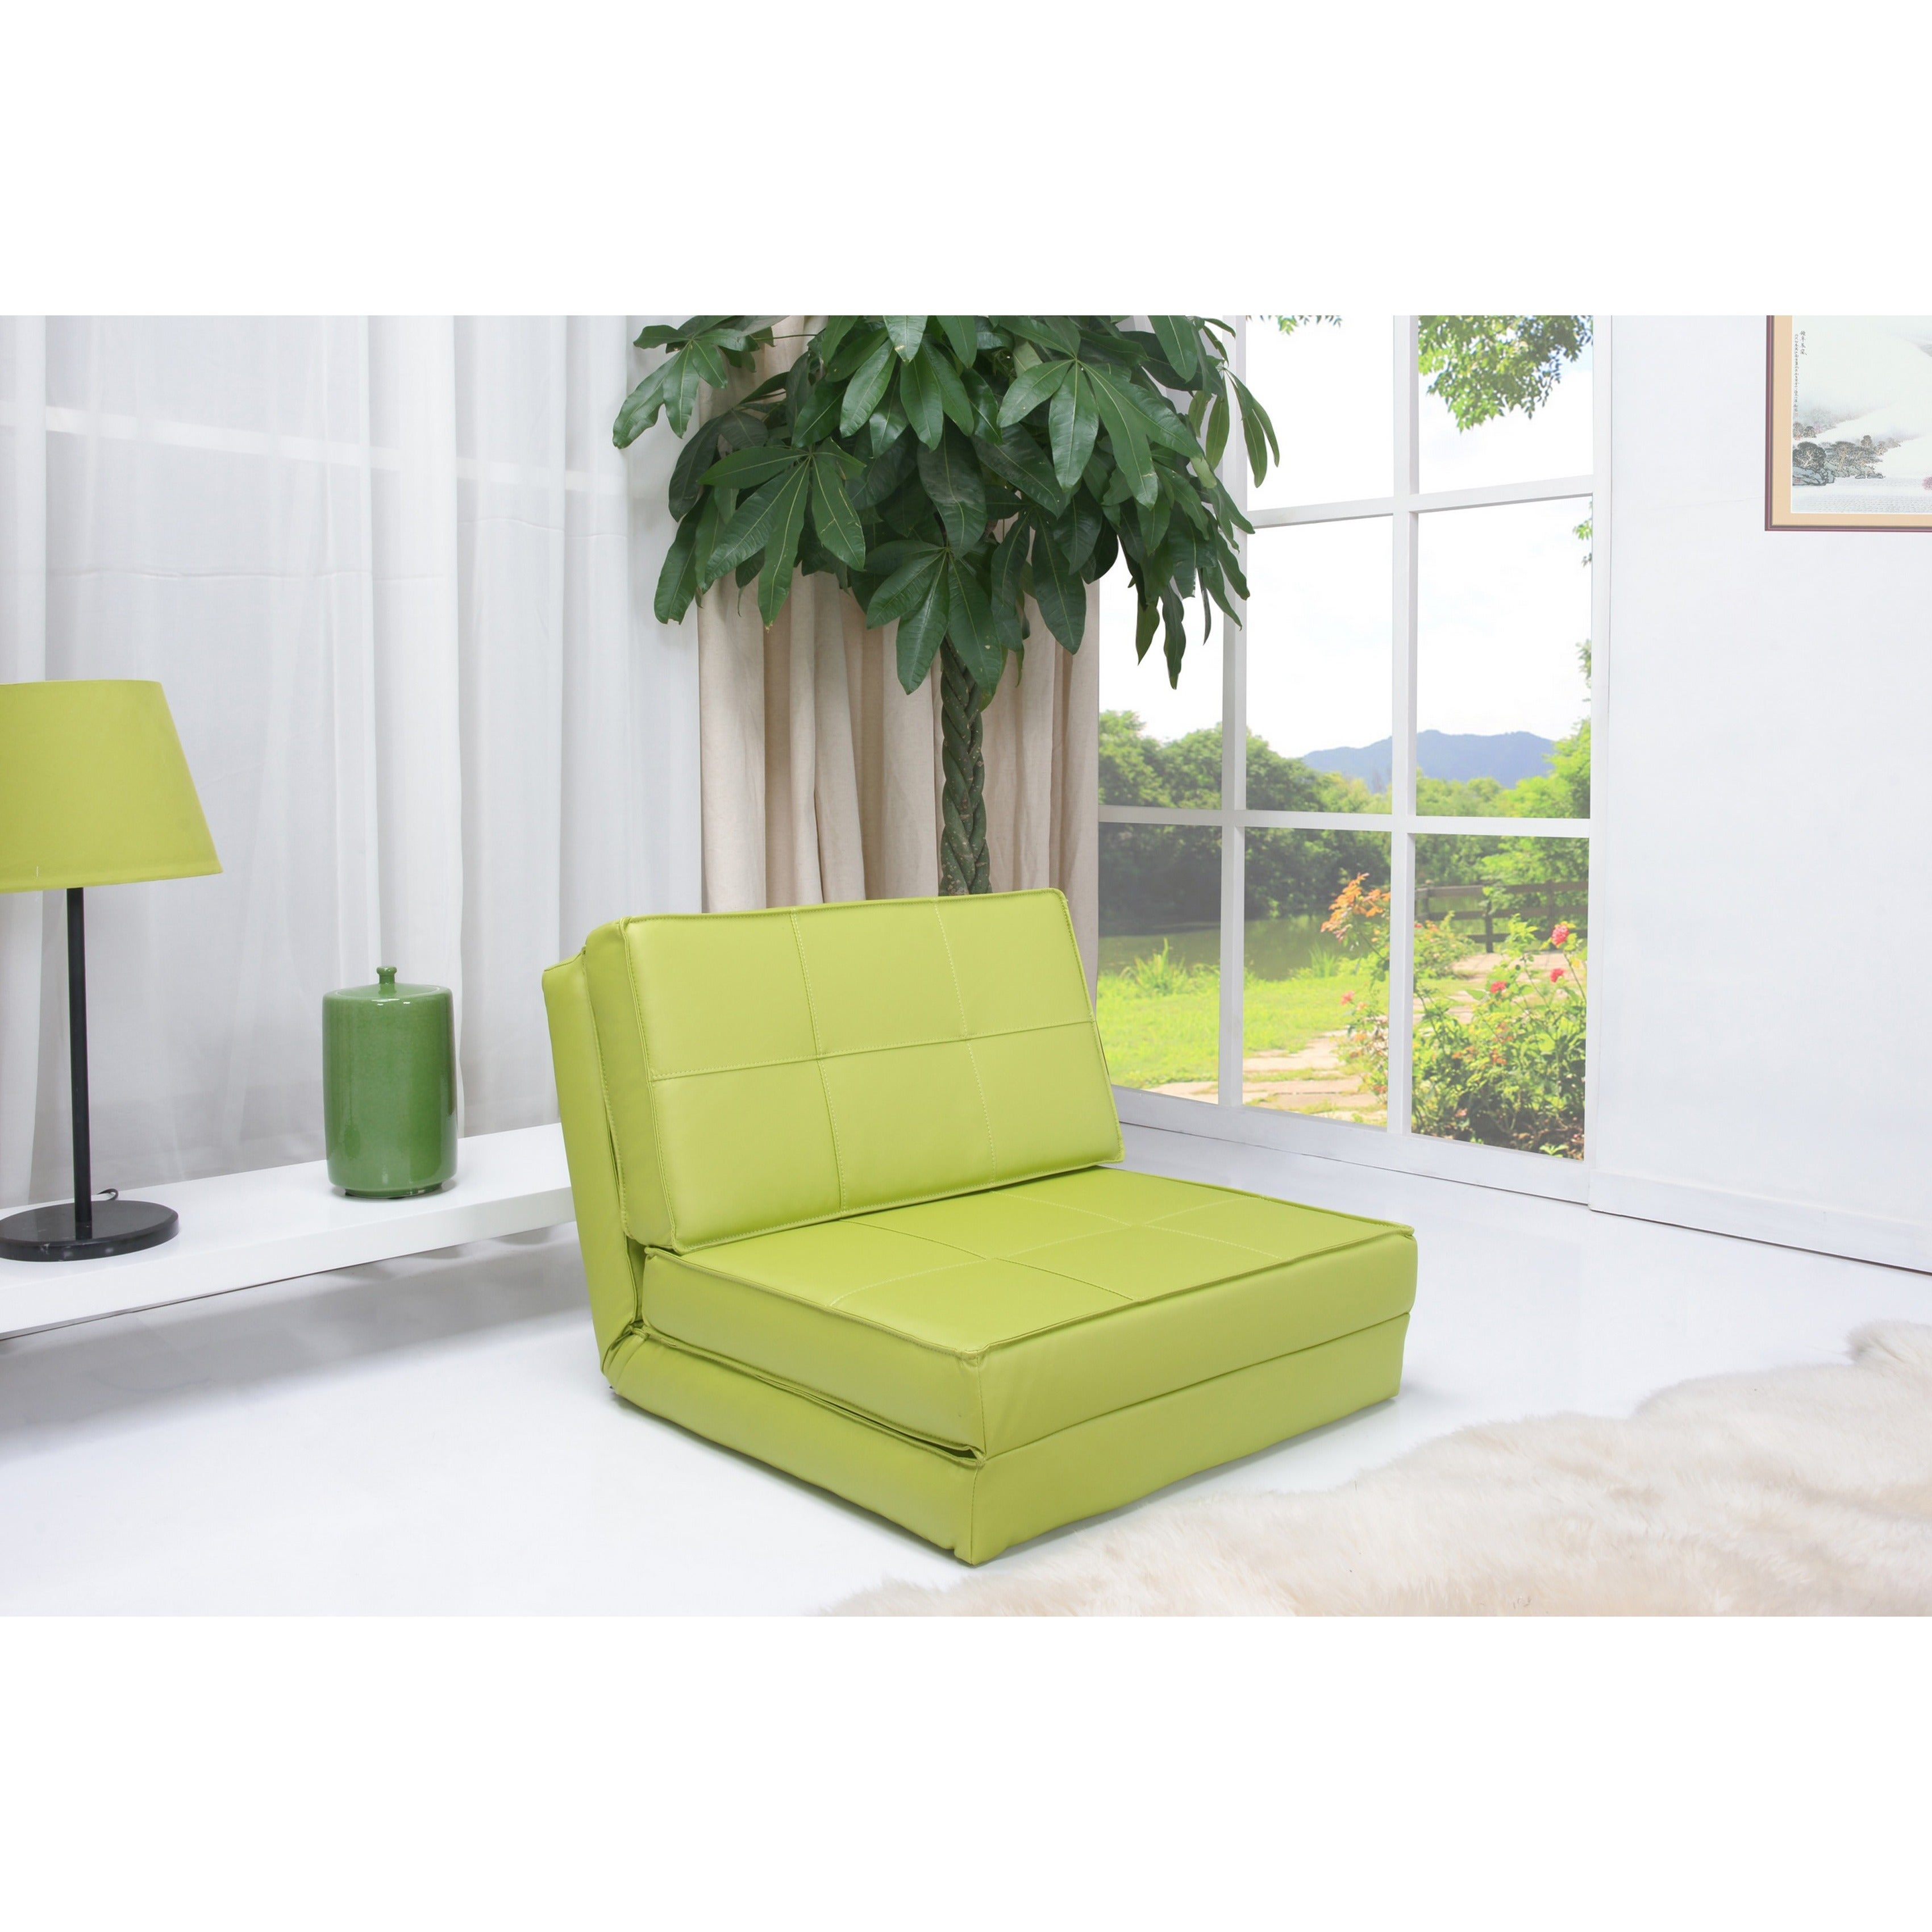 Gold Sparrow Baltimore Green Convertible Chair Bed (Leather)